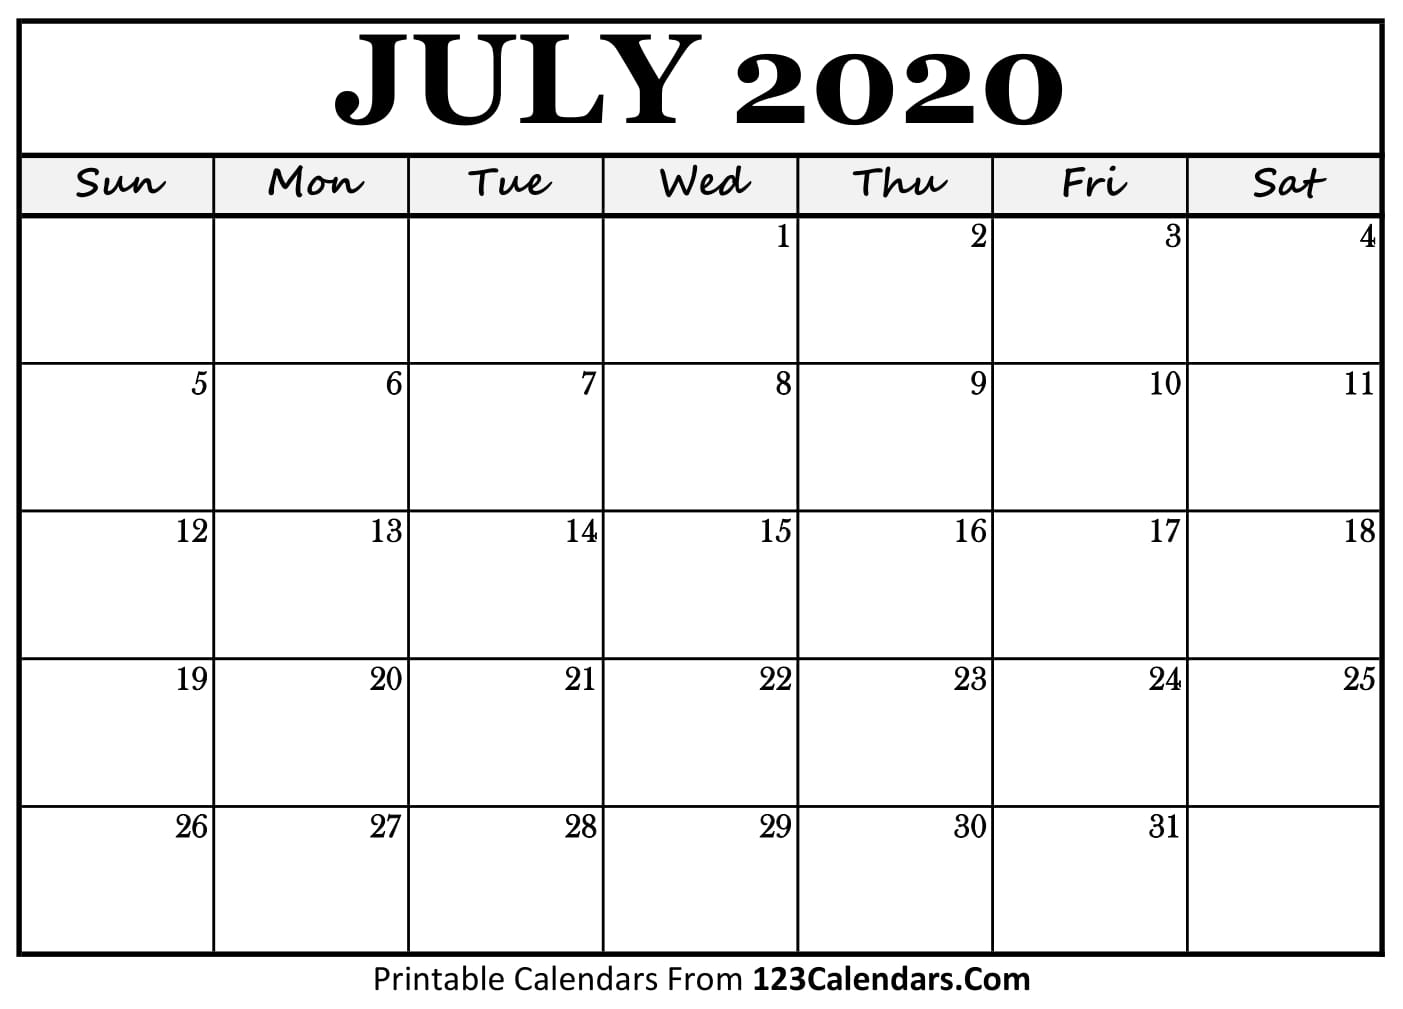 picture relating to July Printable Calendar known as July 2020 Printable Calendar